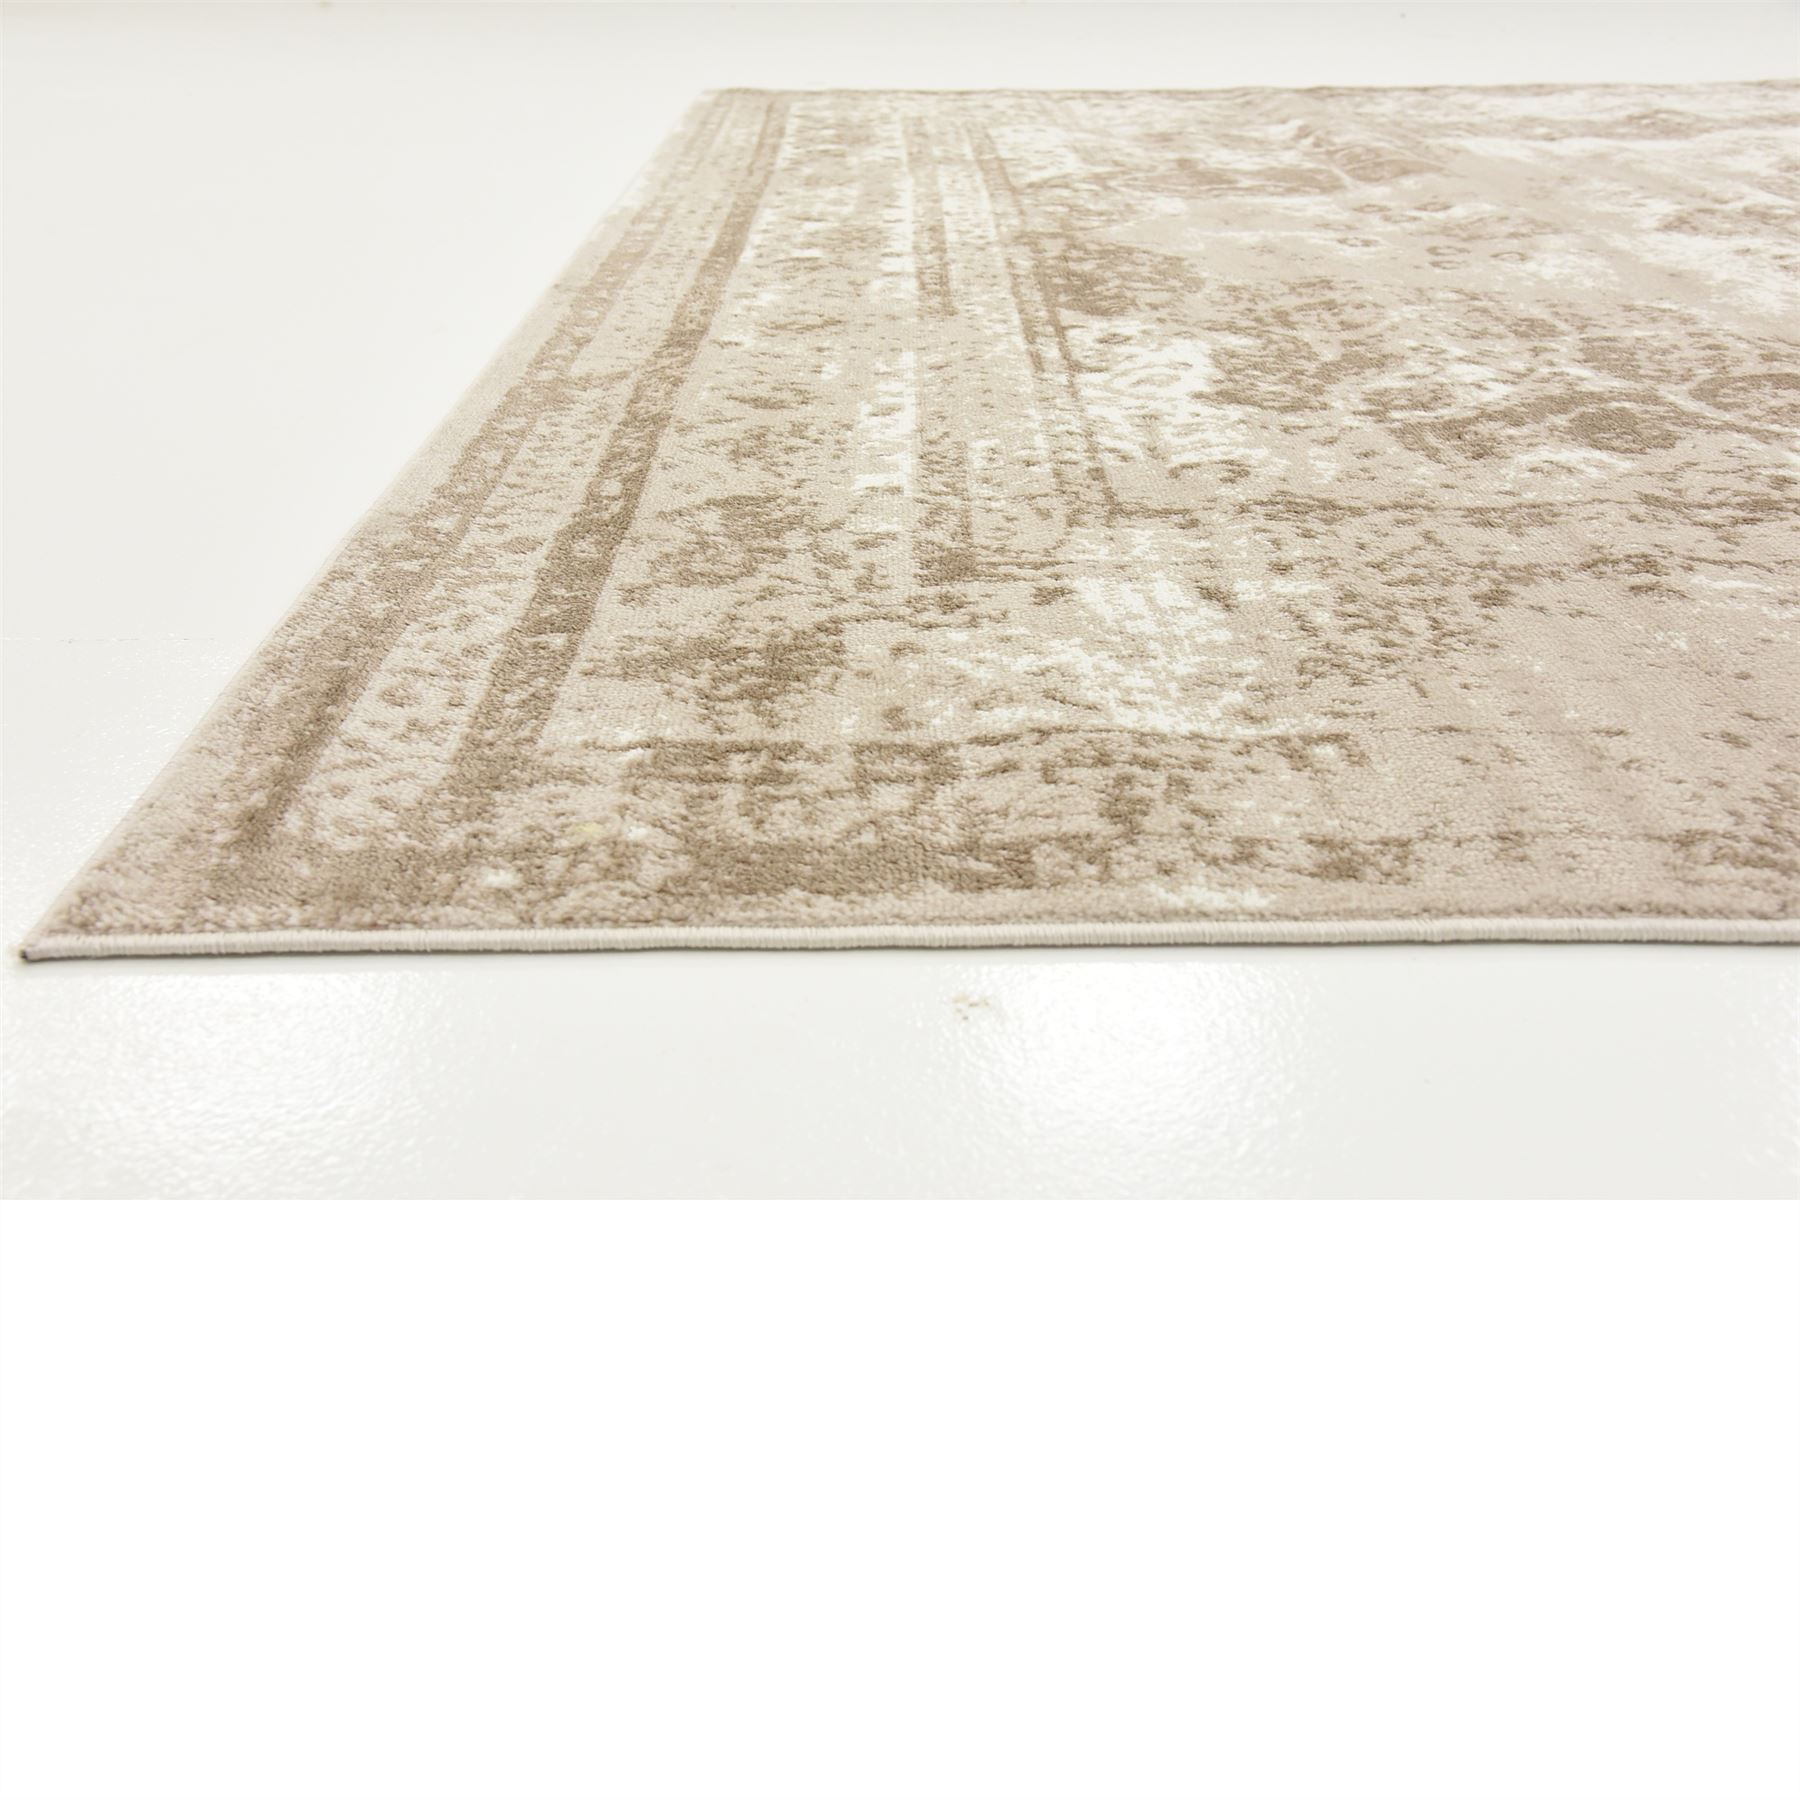 Traditional-Inspired-Persian-Faded-Transitional-Area-Rug-Multi-Color-ALL-SIZES thumbnail 5